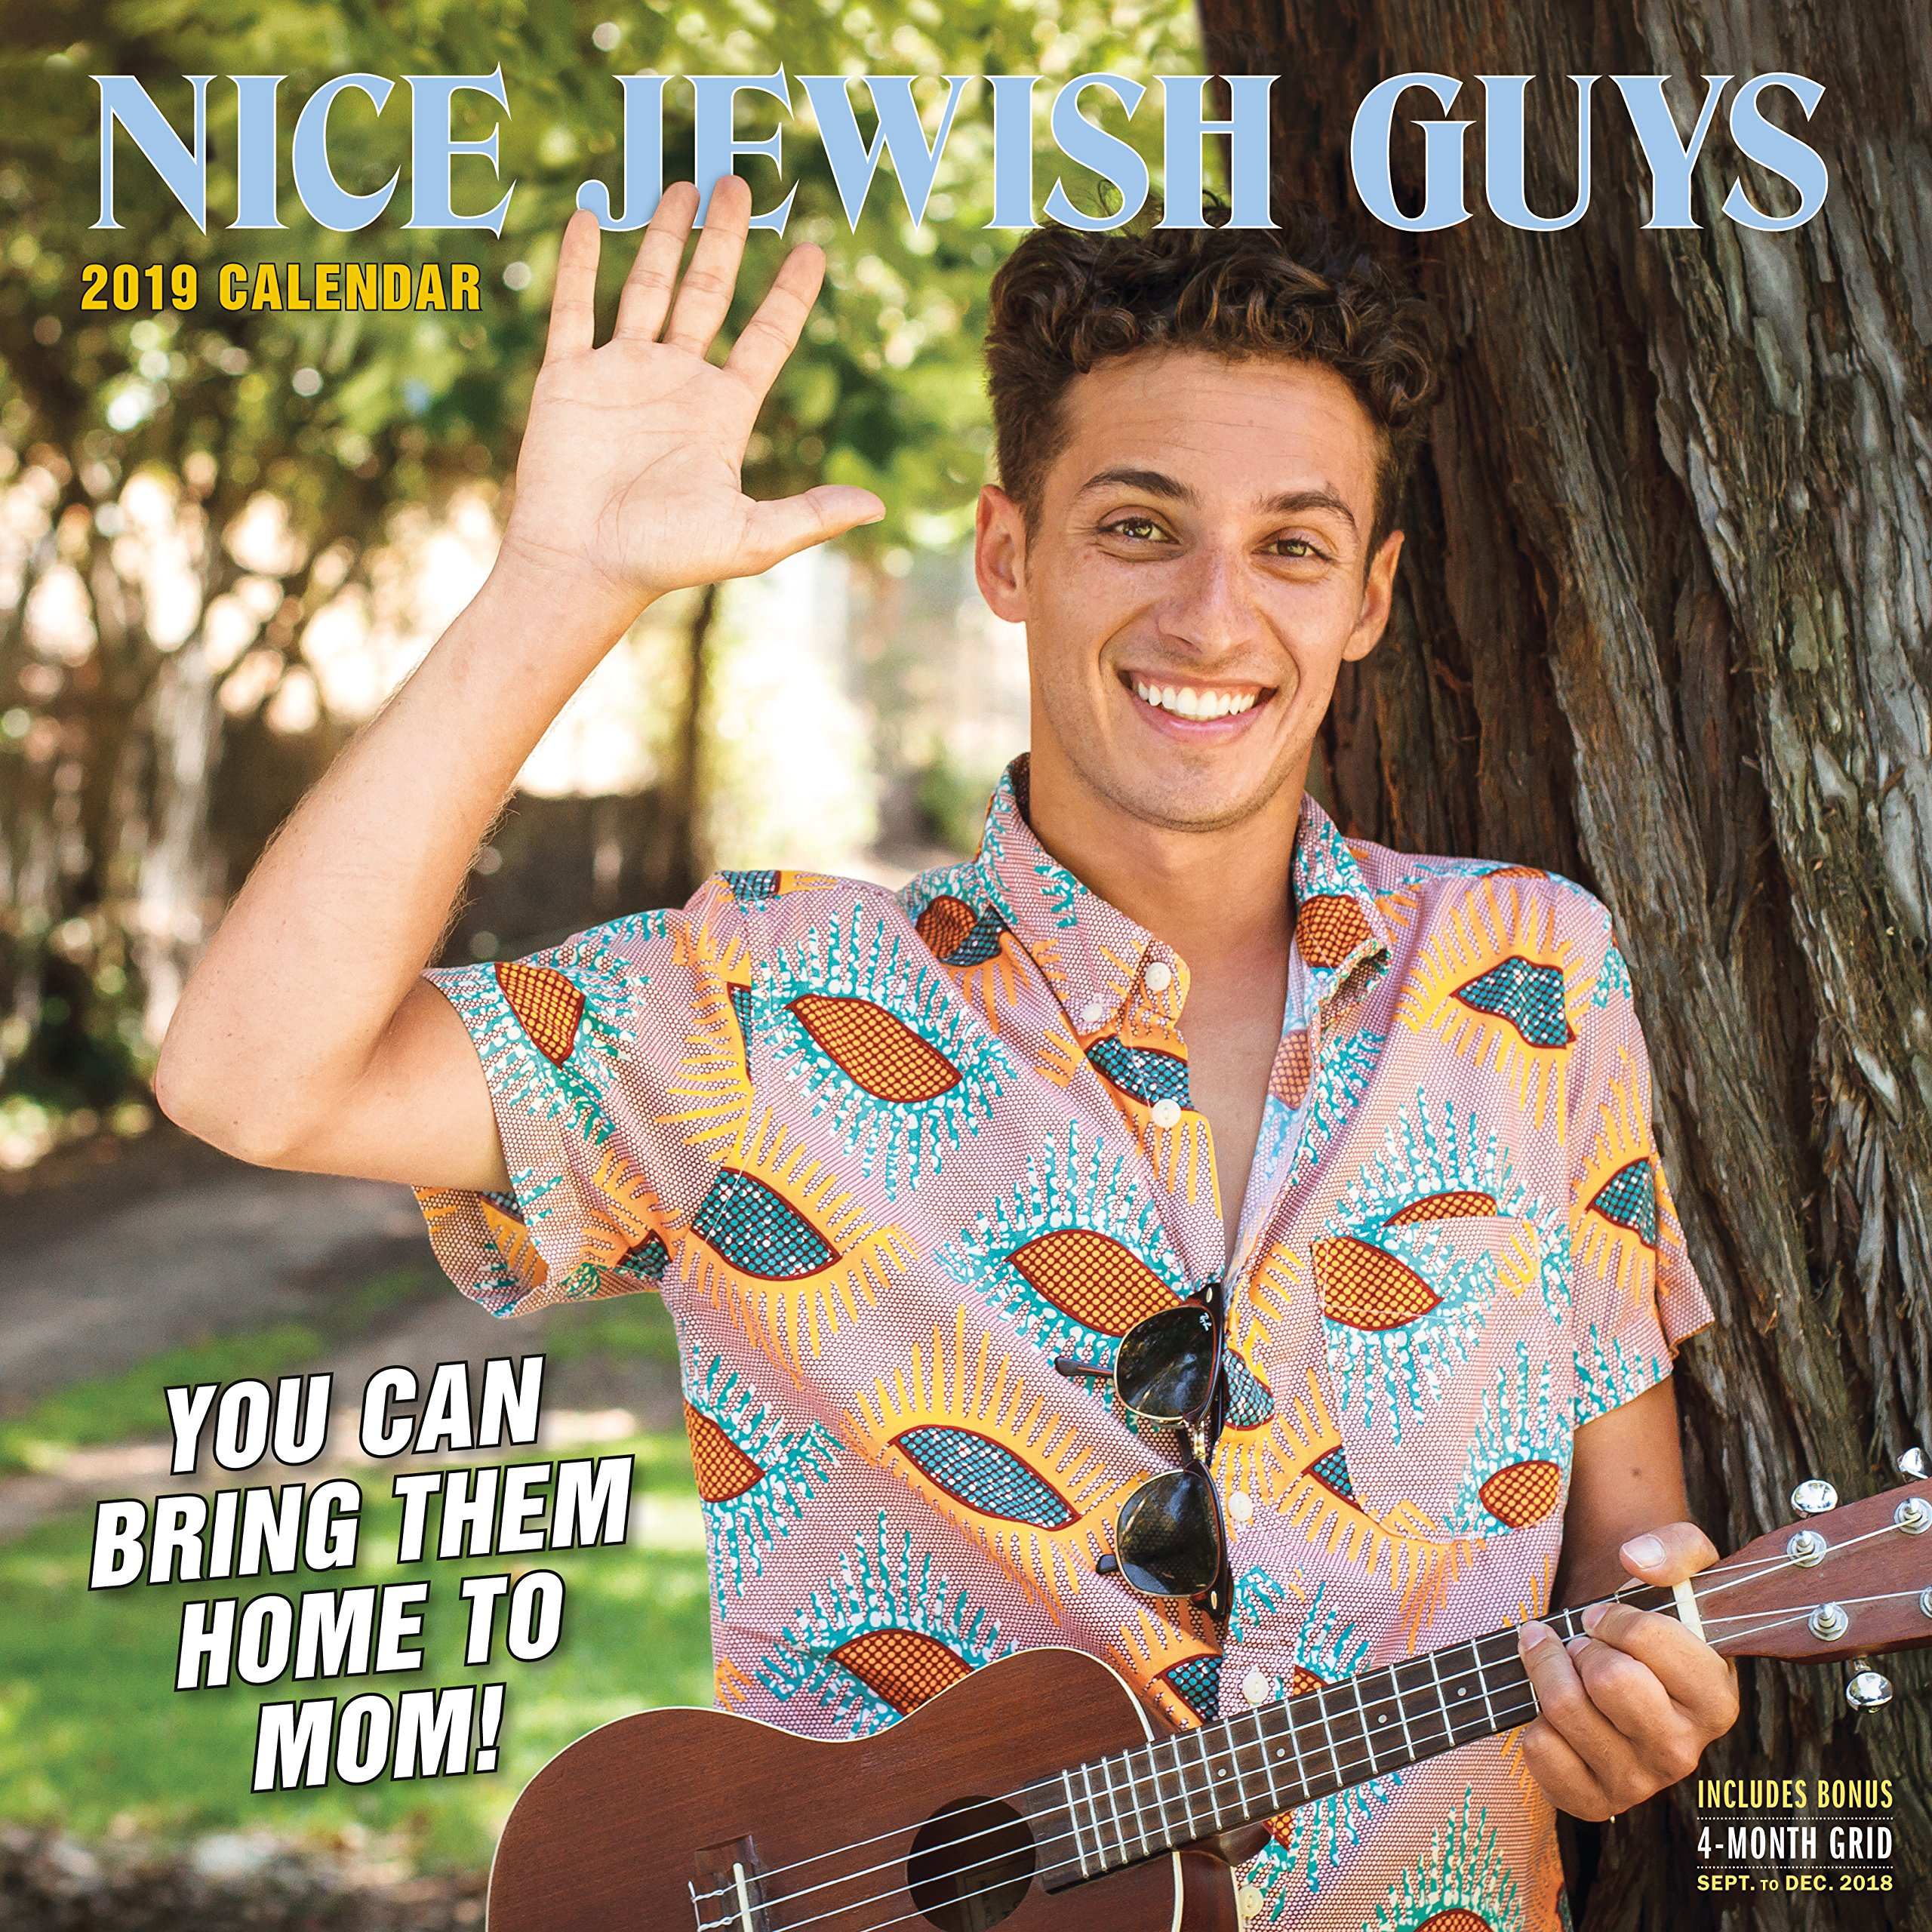 Nice Jewish Guys Wall Calendar 2019: You Can Take Them Home to Mom!